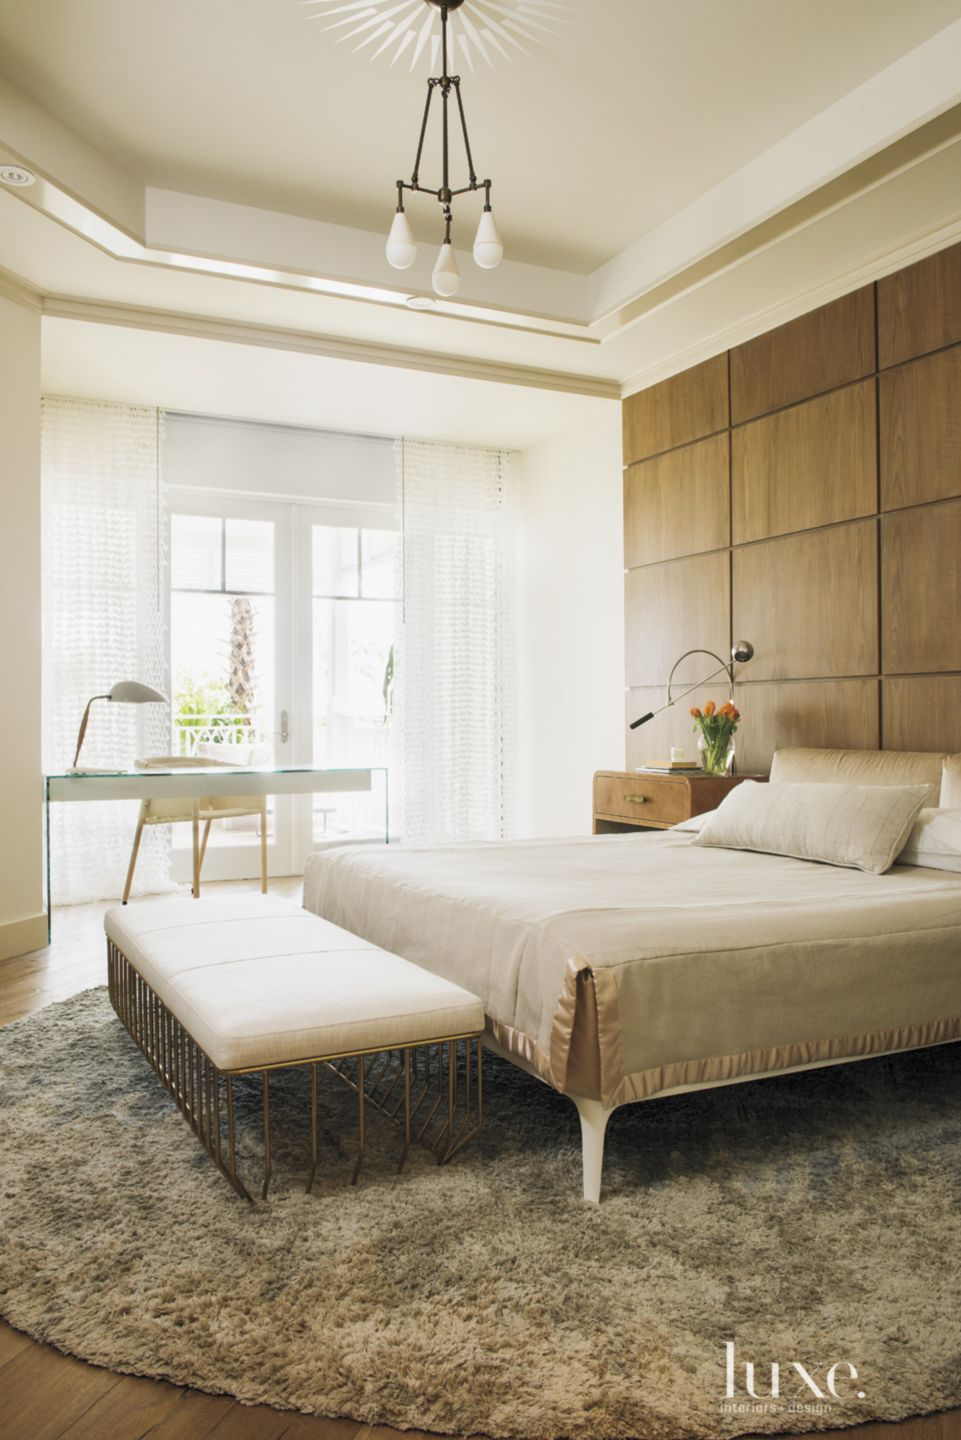 Eclectic White Bedroom with Wood Paneled Wall